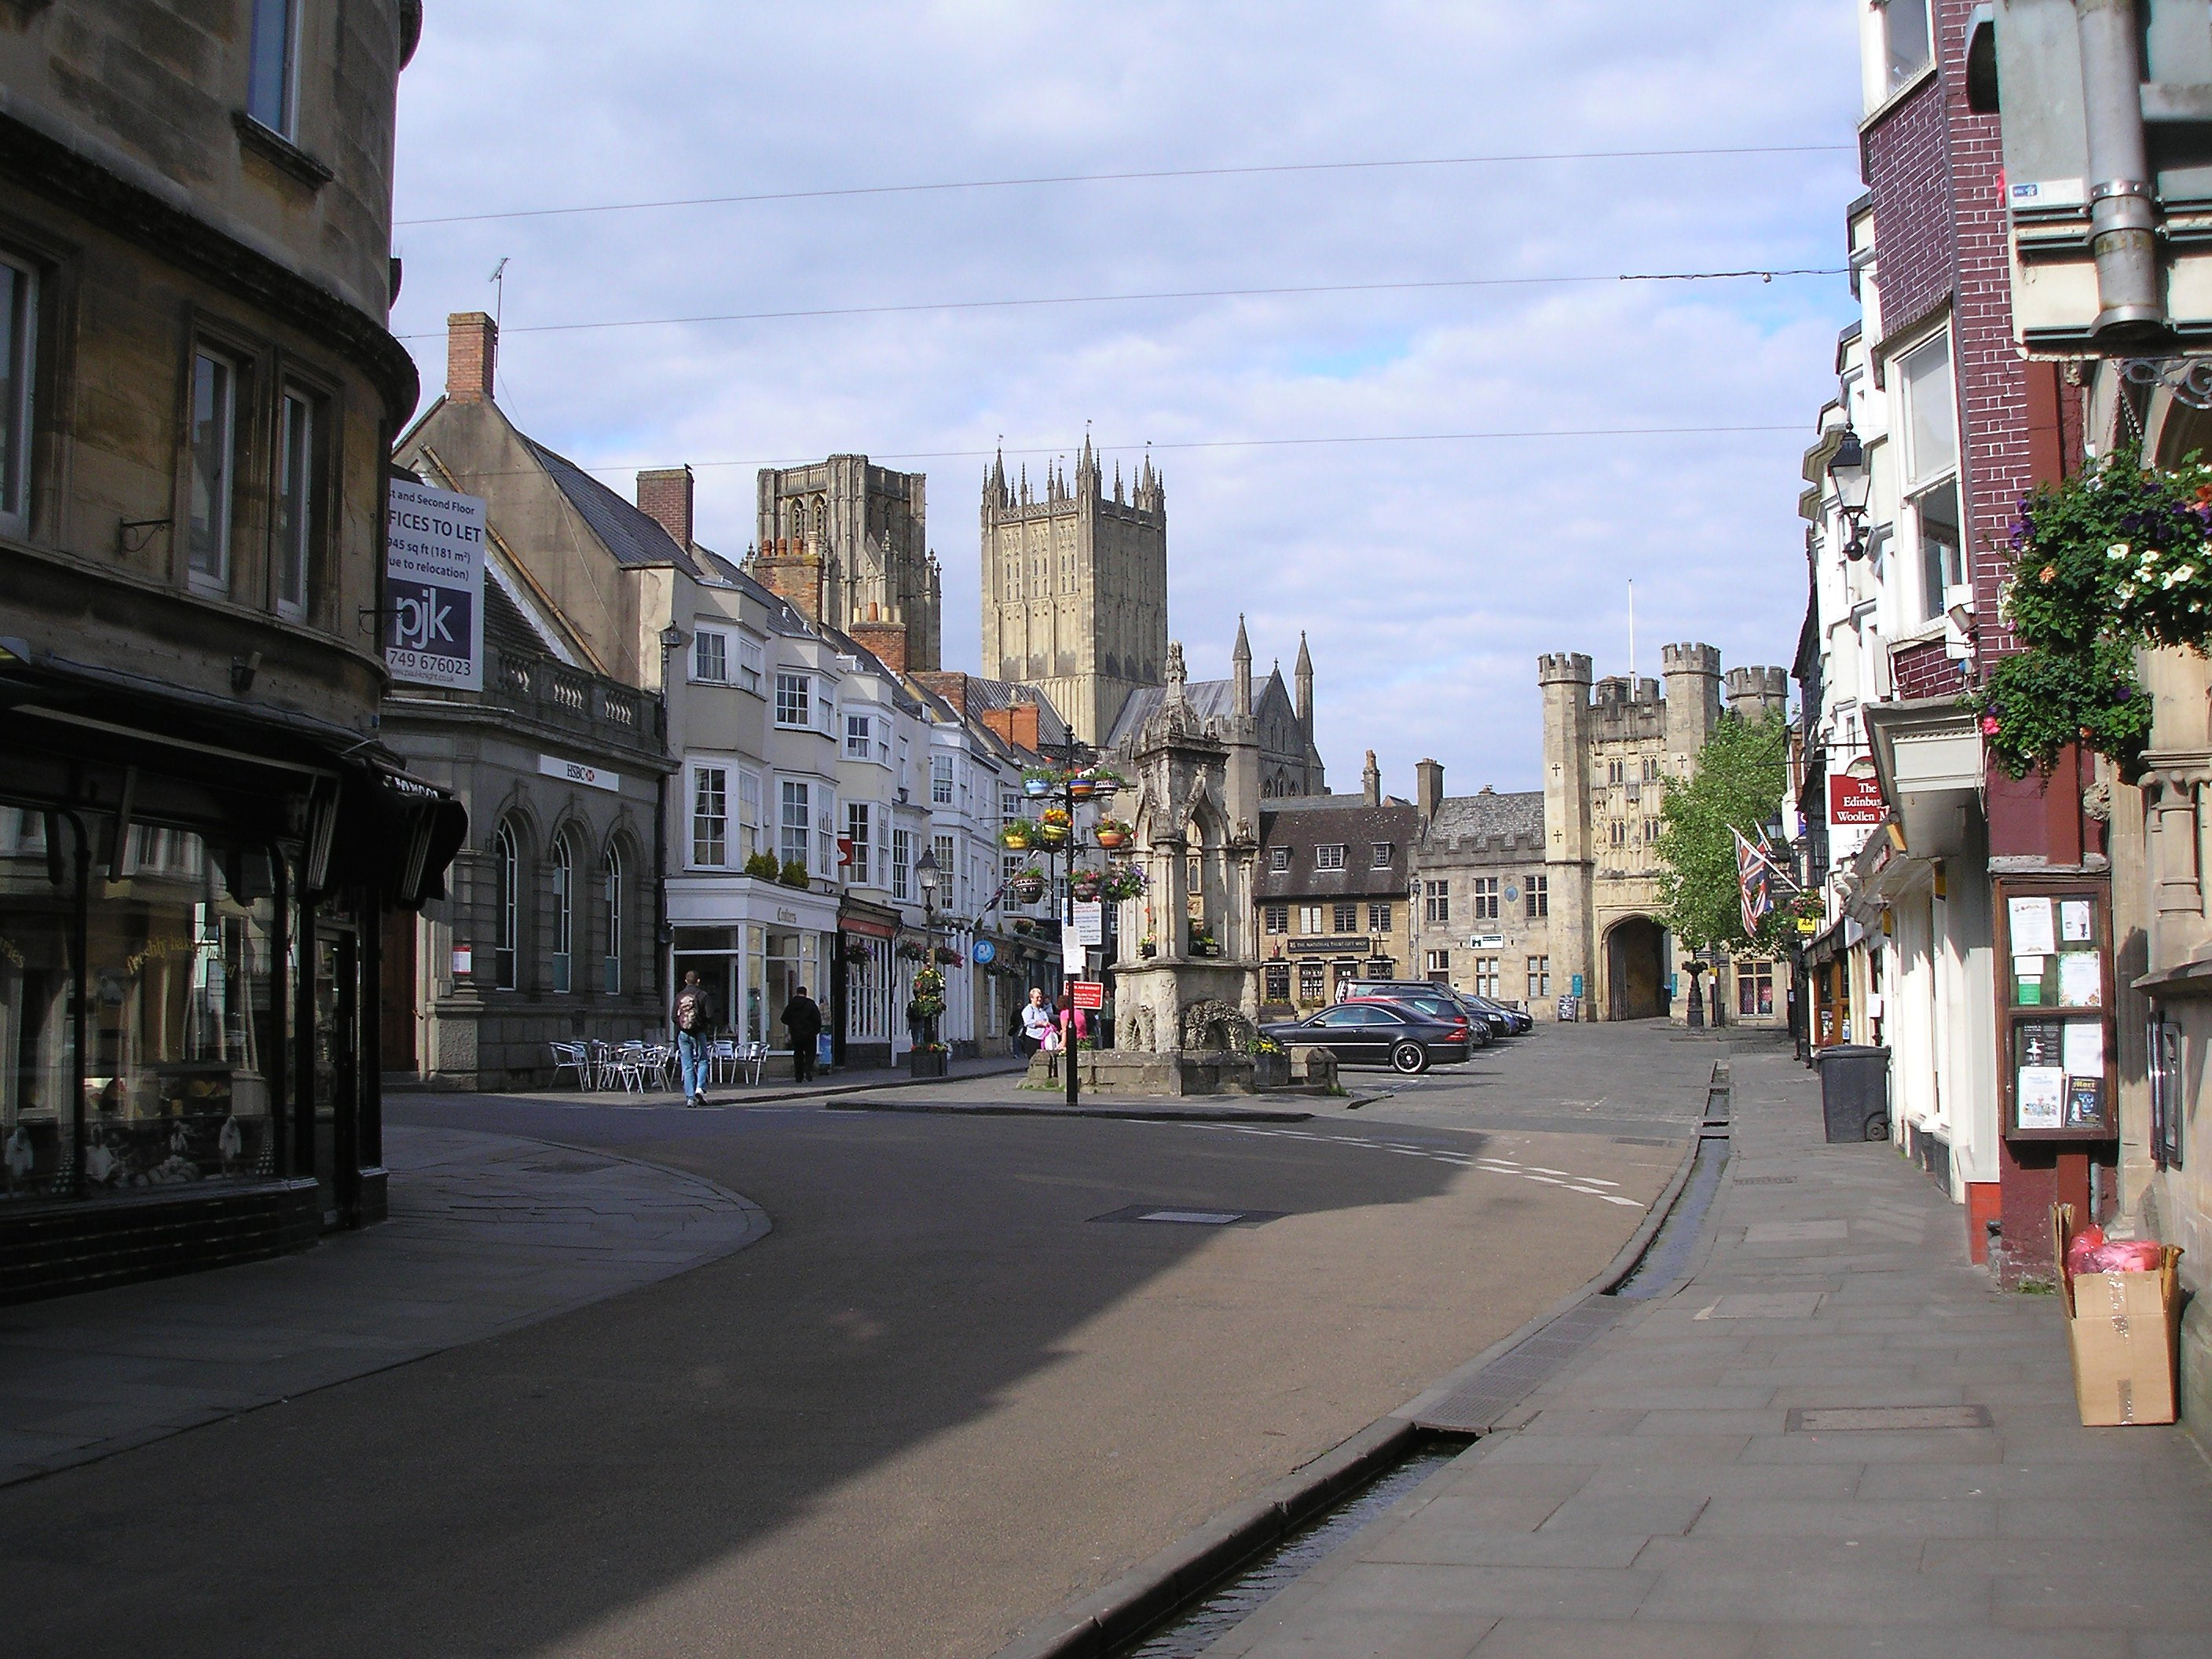 Wells somerset familypedia fandom powered by wikia for Well pictures